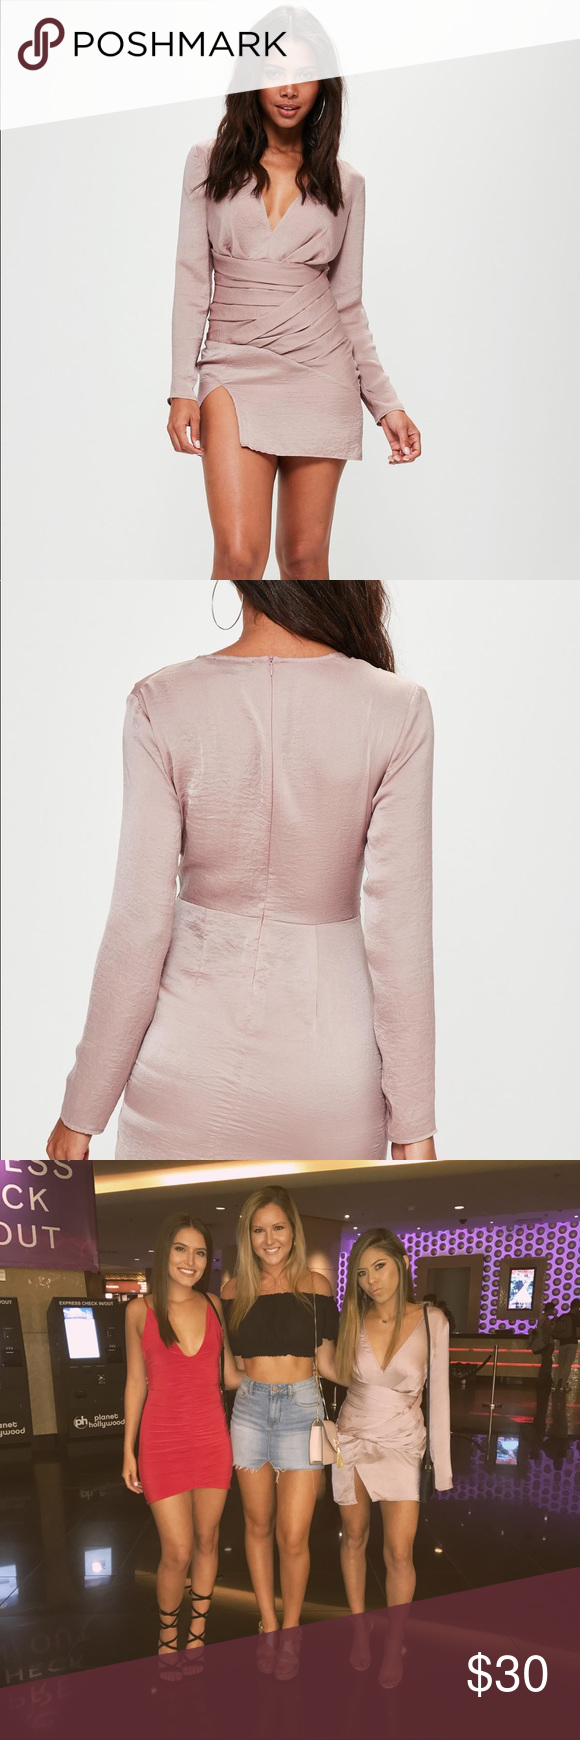 c27a101d917 Pink silky long sleeve panelled shift dress I wore this dress to Vegas and  got so many compliments every where I went! I only wore once!